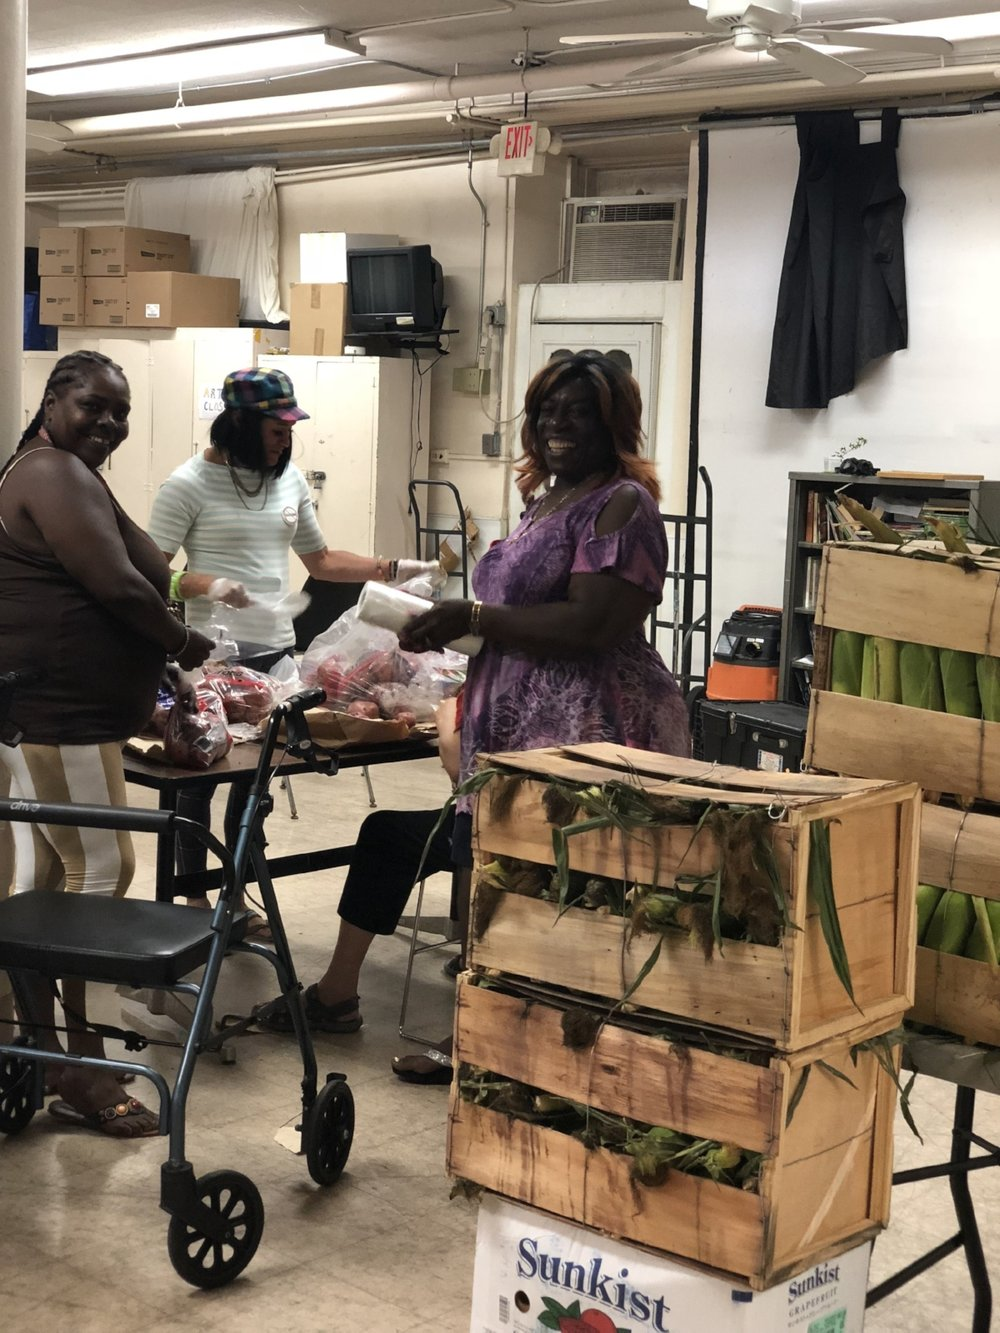 FOOD PANTRY - Volunteers of our food pantry program, dressing vegetables.